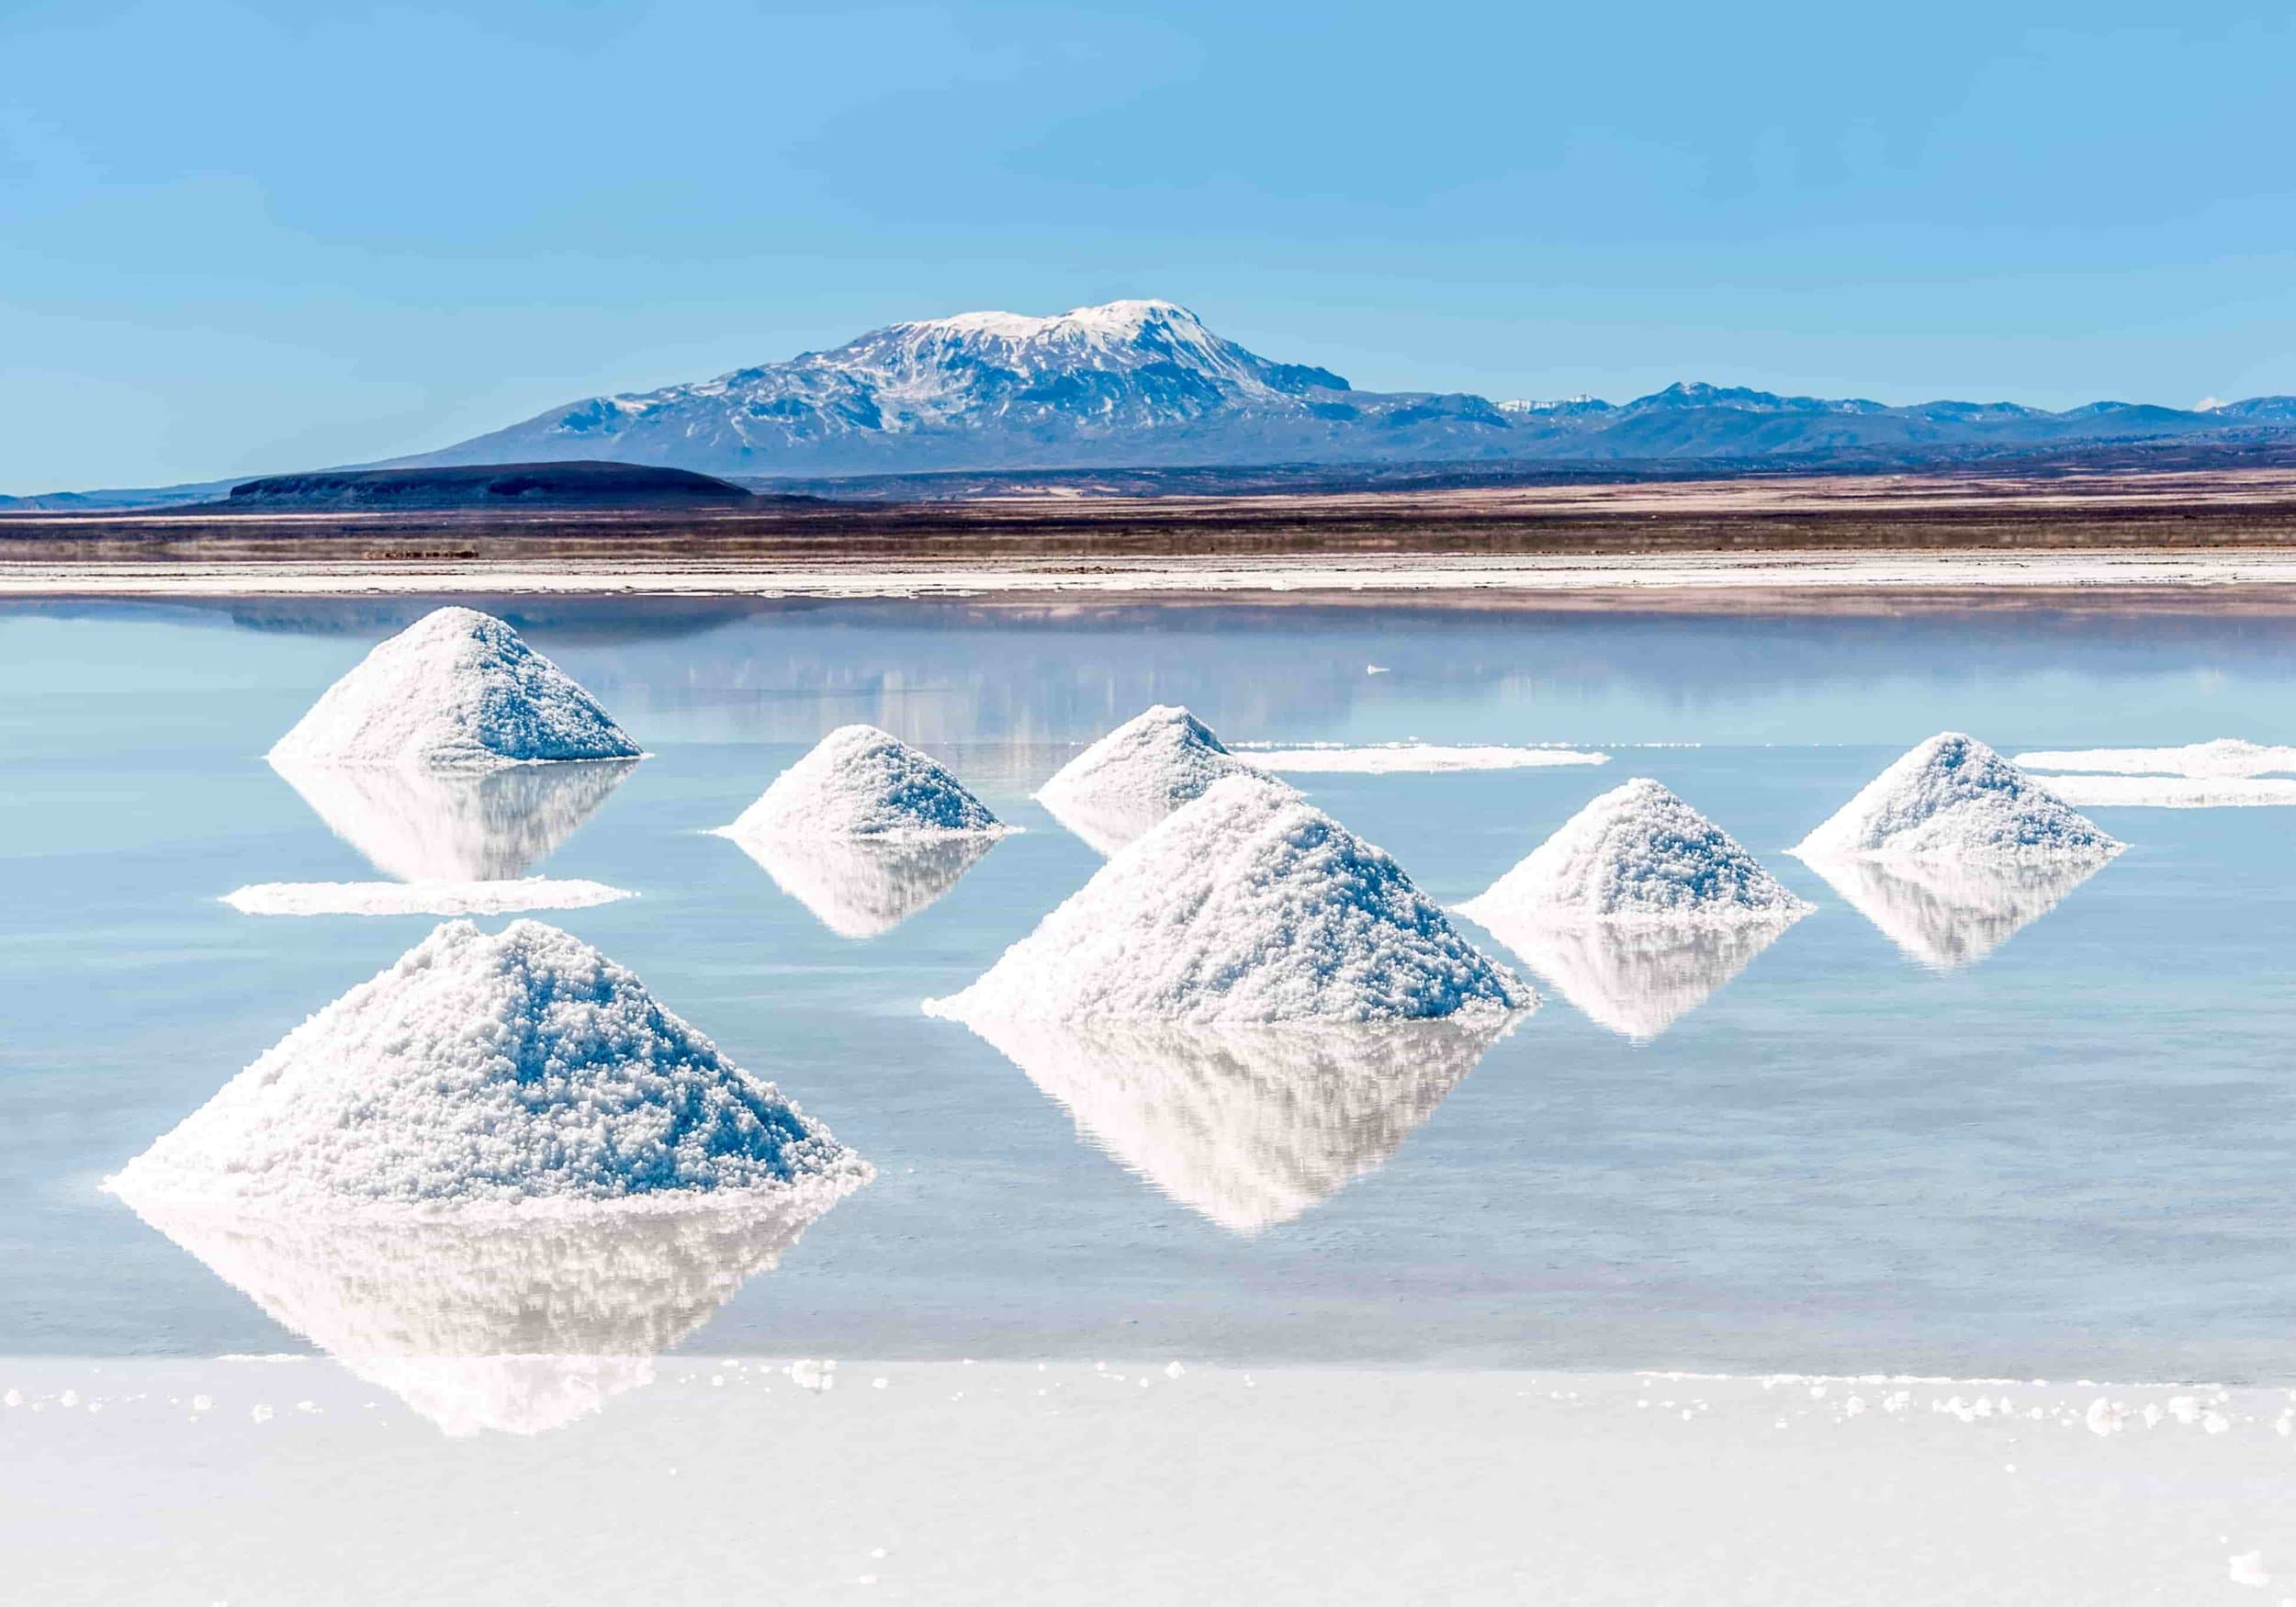 Lithium deposits being harvested from the lake